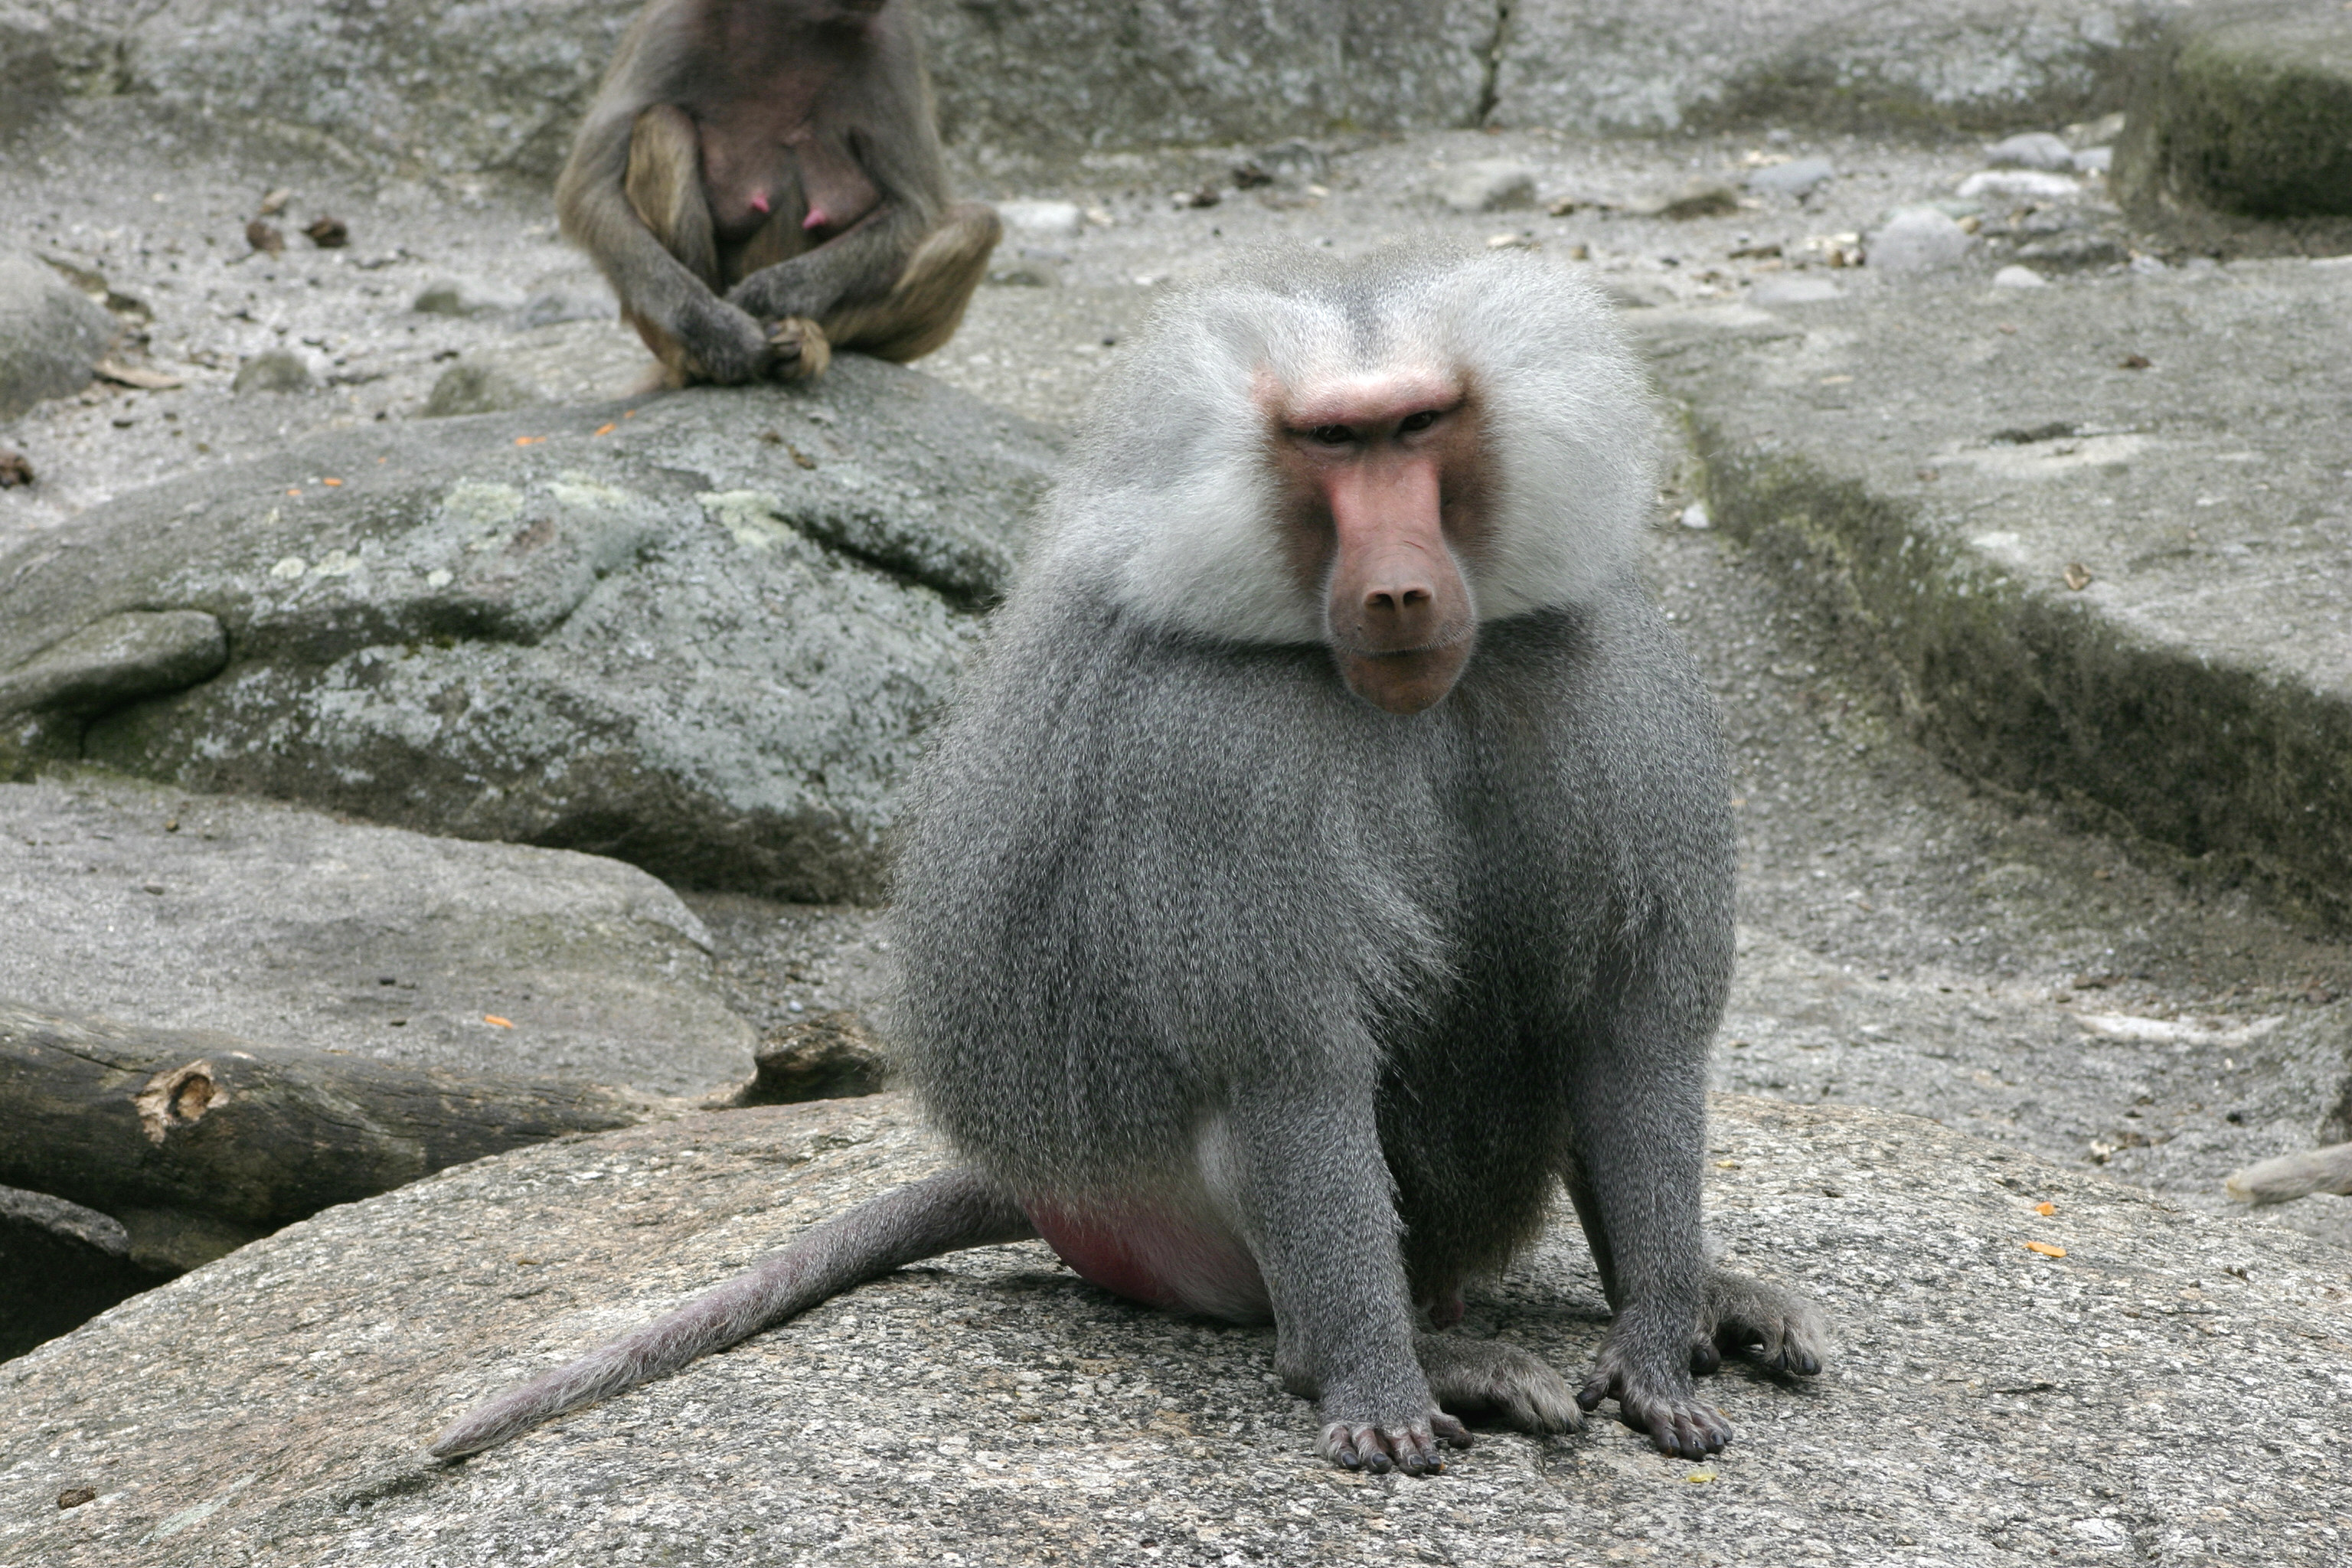 hamydryas baboon essay Essay by papernerd contributor, college, undergraduate, september 2001  download word file, 7 pages, 50 downloaded 40 times keywords  hamydryas baboon.